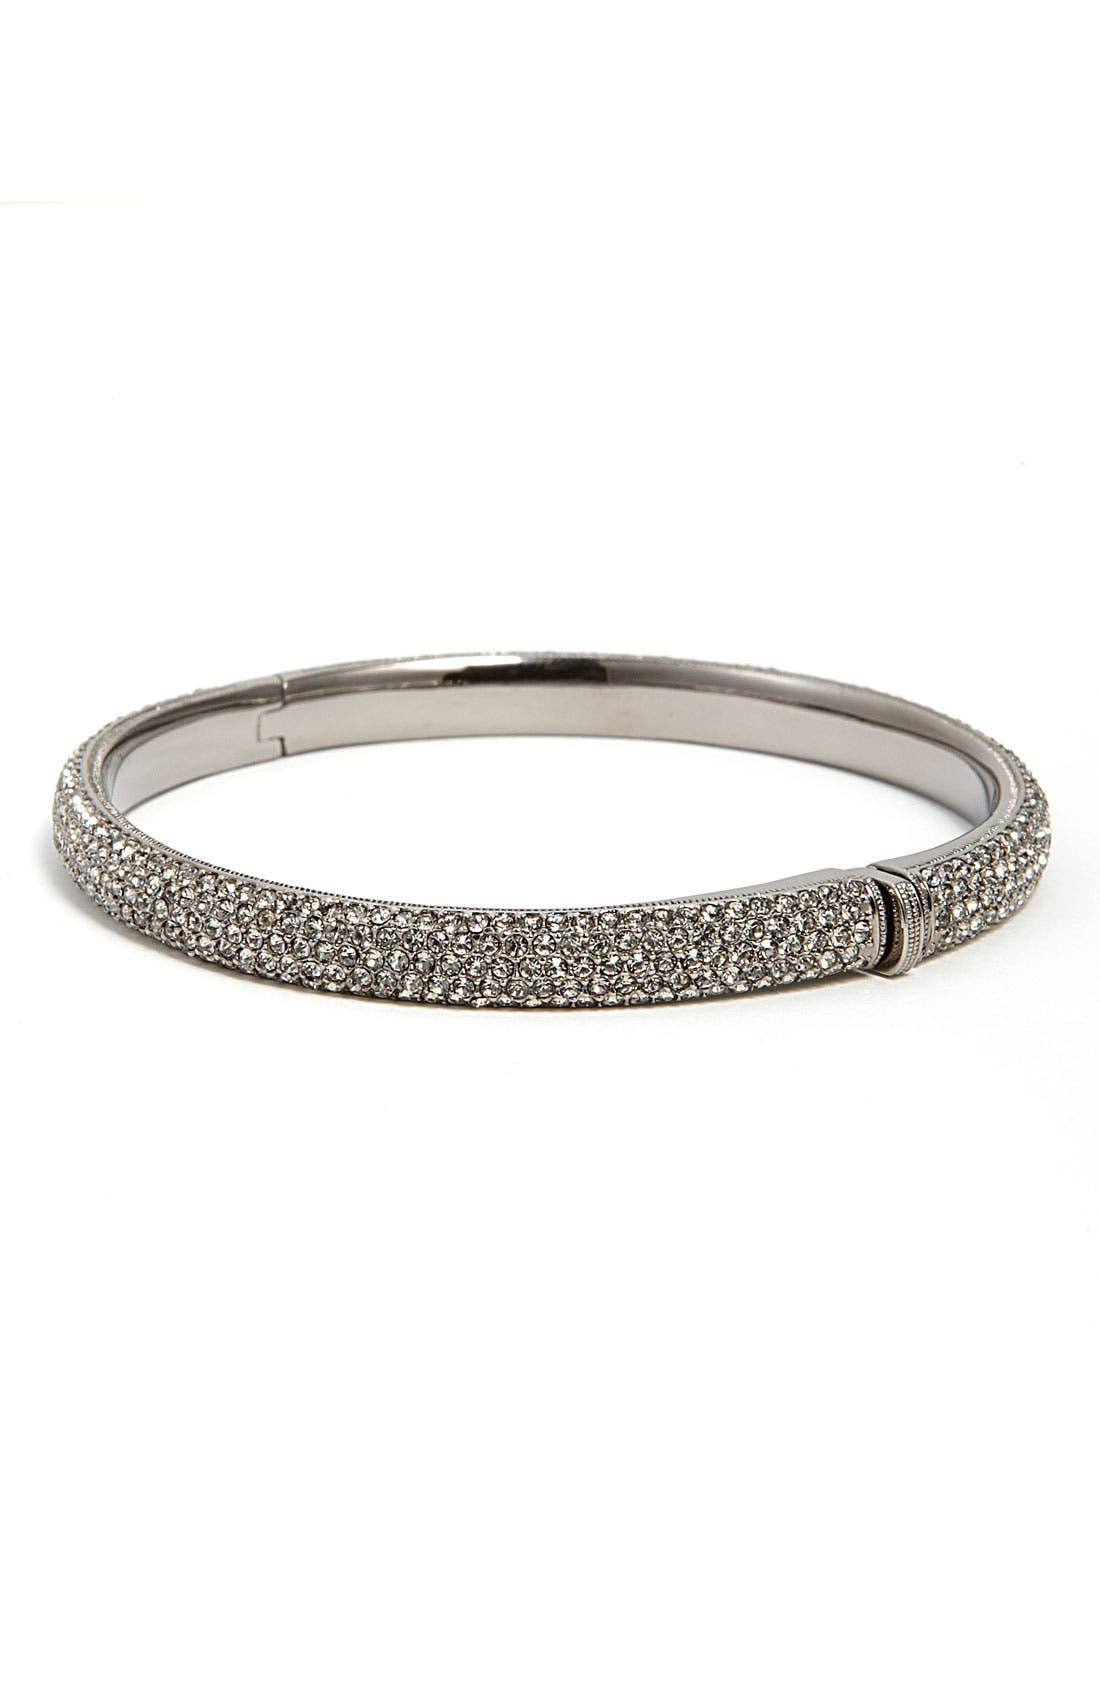 Pavé Crystal Bangle,                             Main thumbnail 1, color,                             001